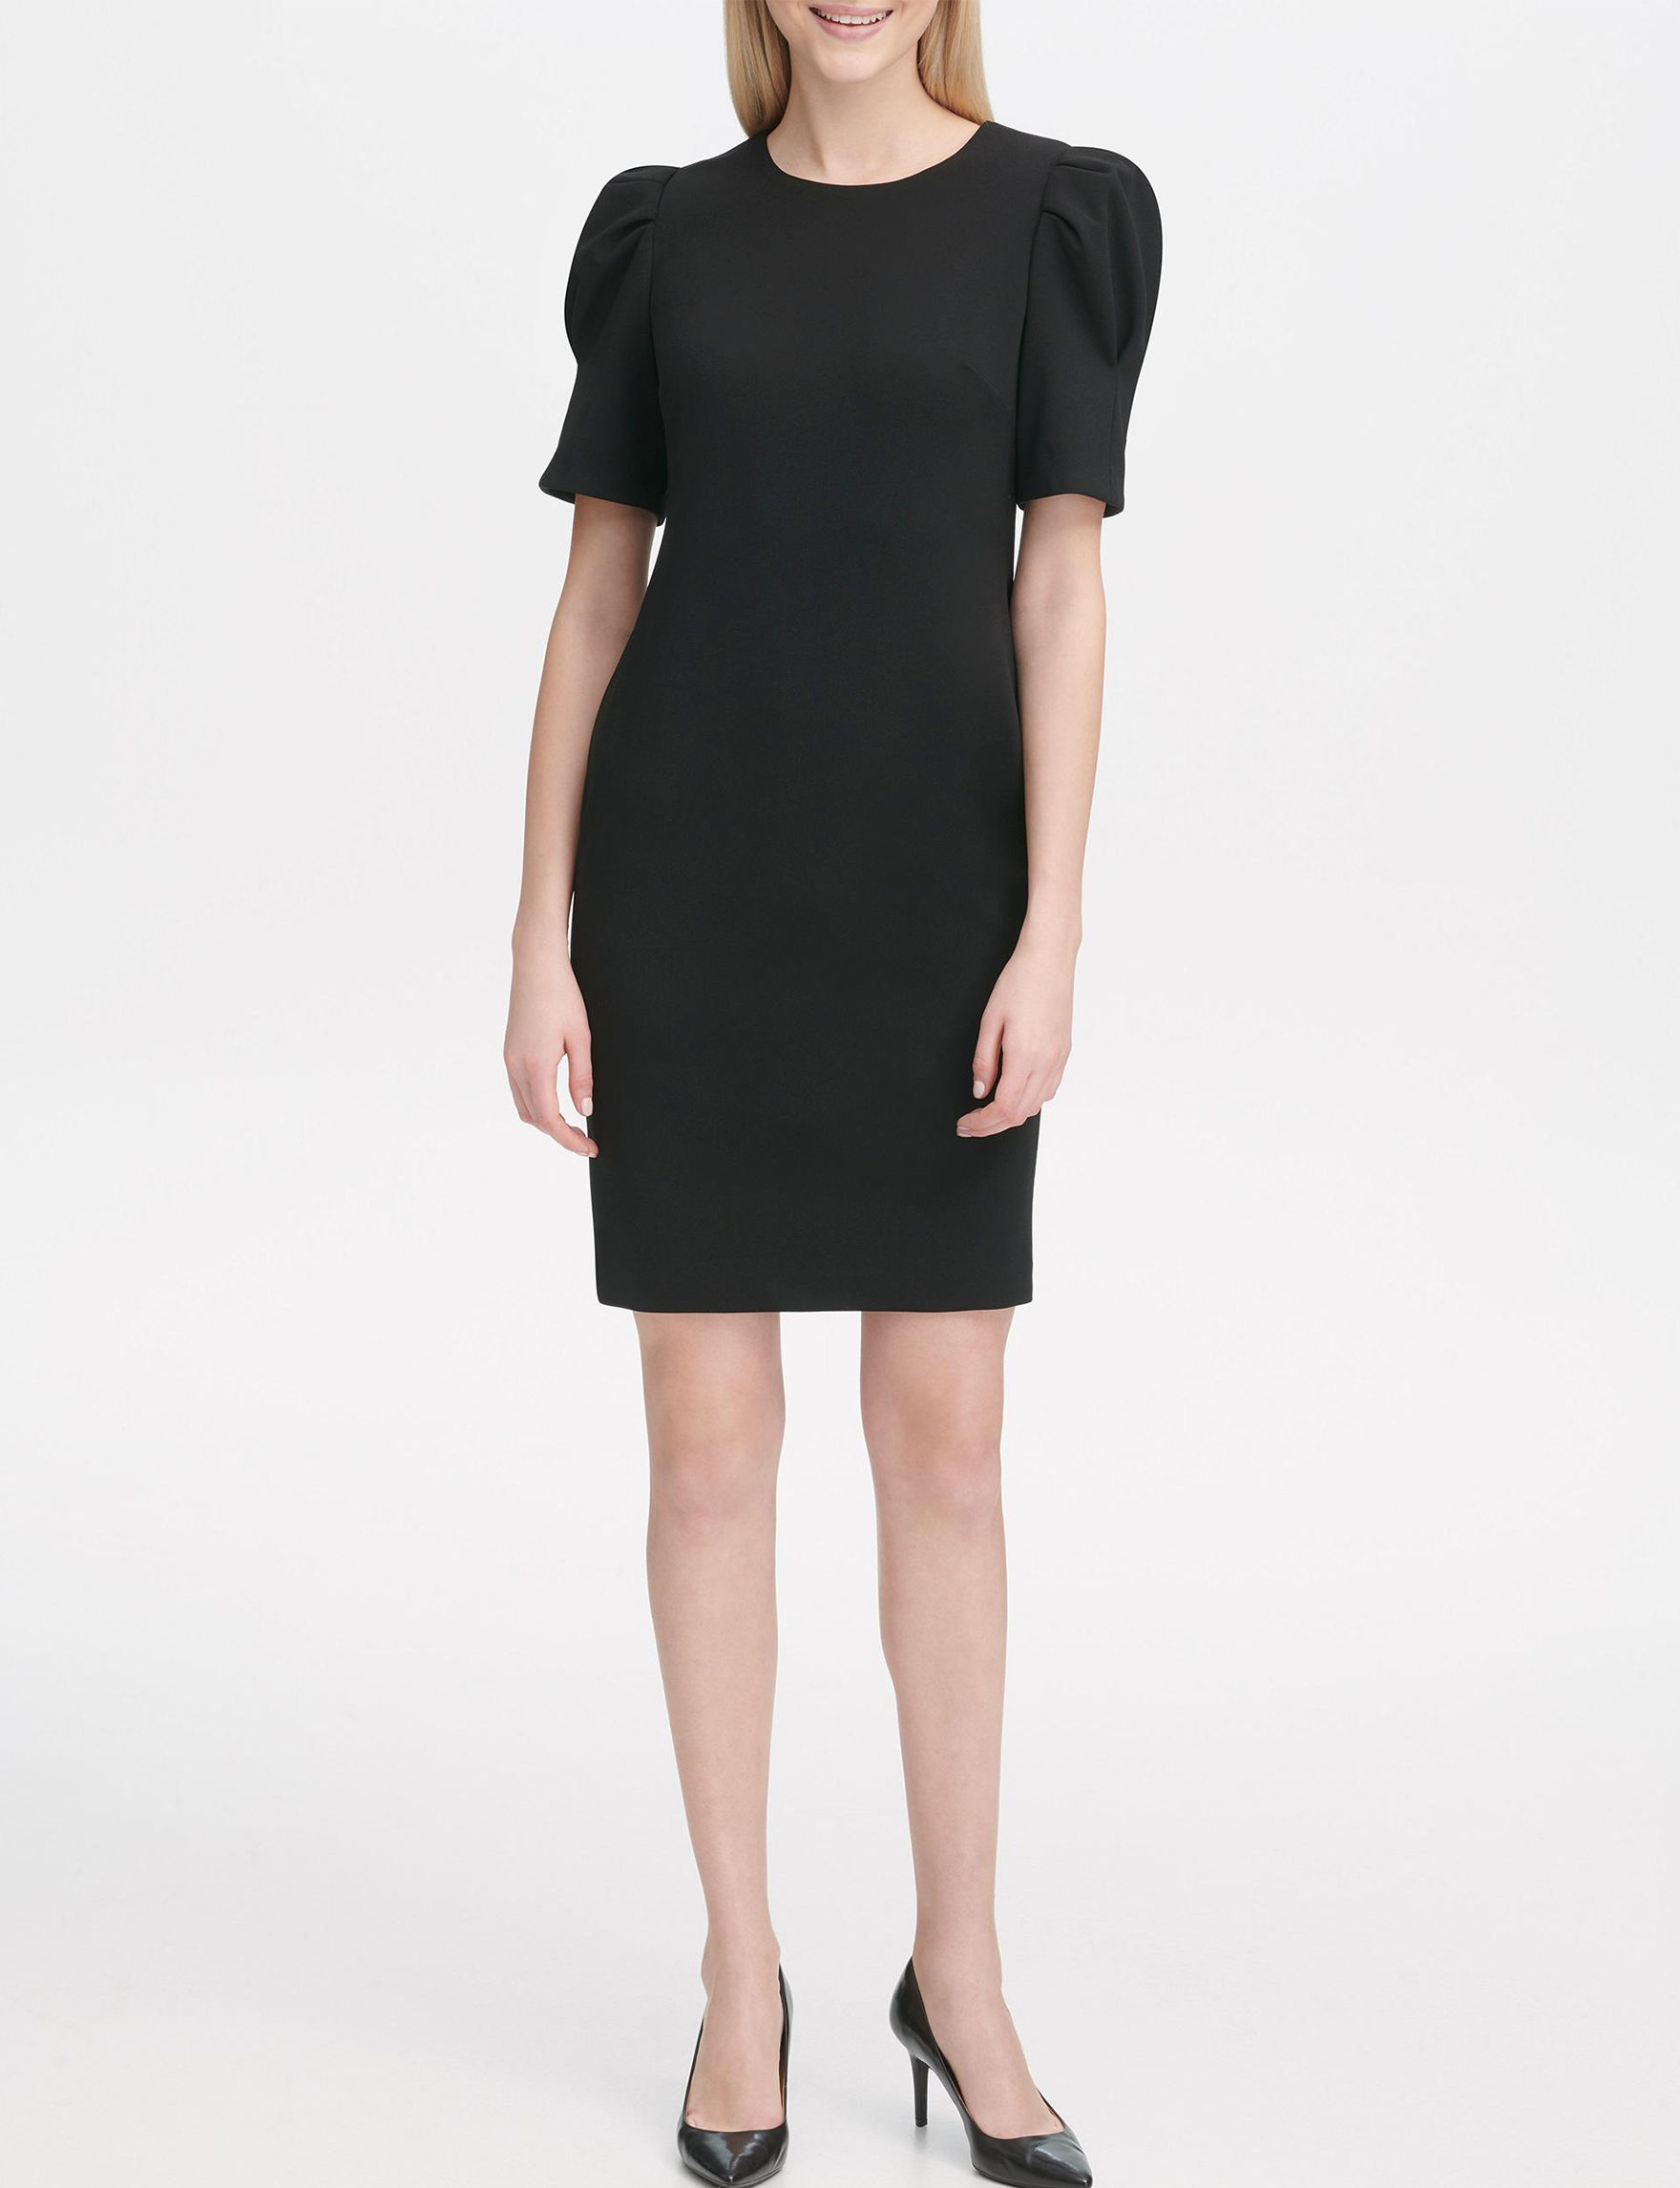 Calvin Klein Black Shirts & Blouses Shift Dresses